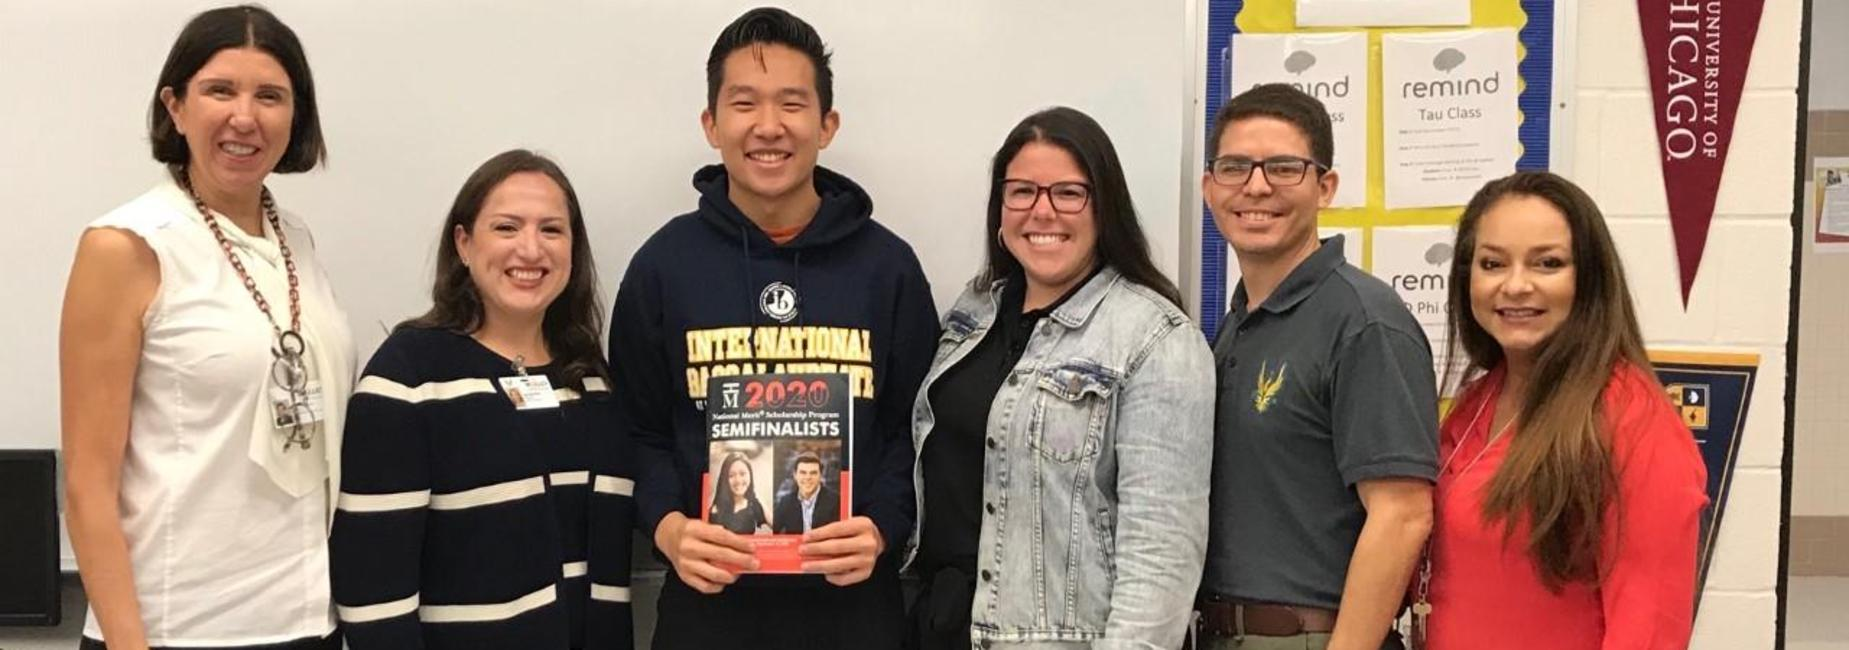 David Li, Semi-Finalist for National Merit Scholarship